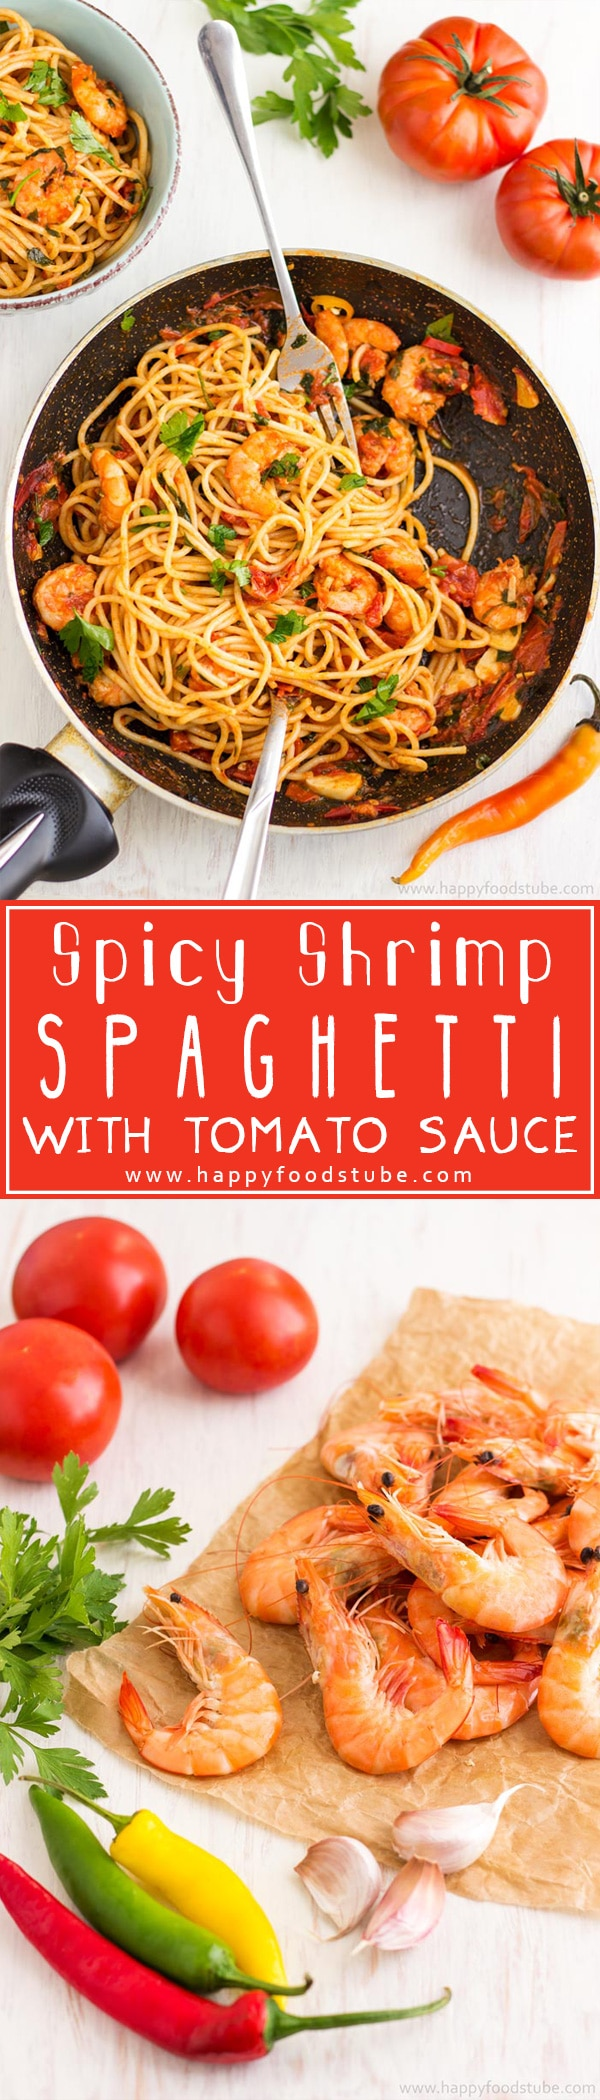 Spicy Shrimp Spaghetti with Tomato Sauce is an easy and delicious dish ready in 20 minutes! Super simple family meal recipe! | happyfoodstube.com